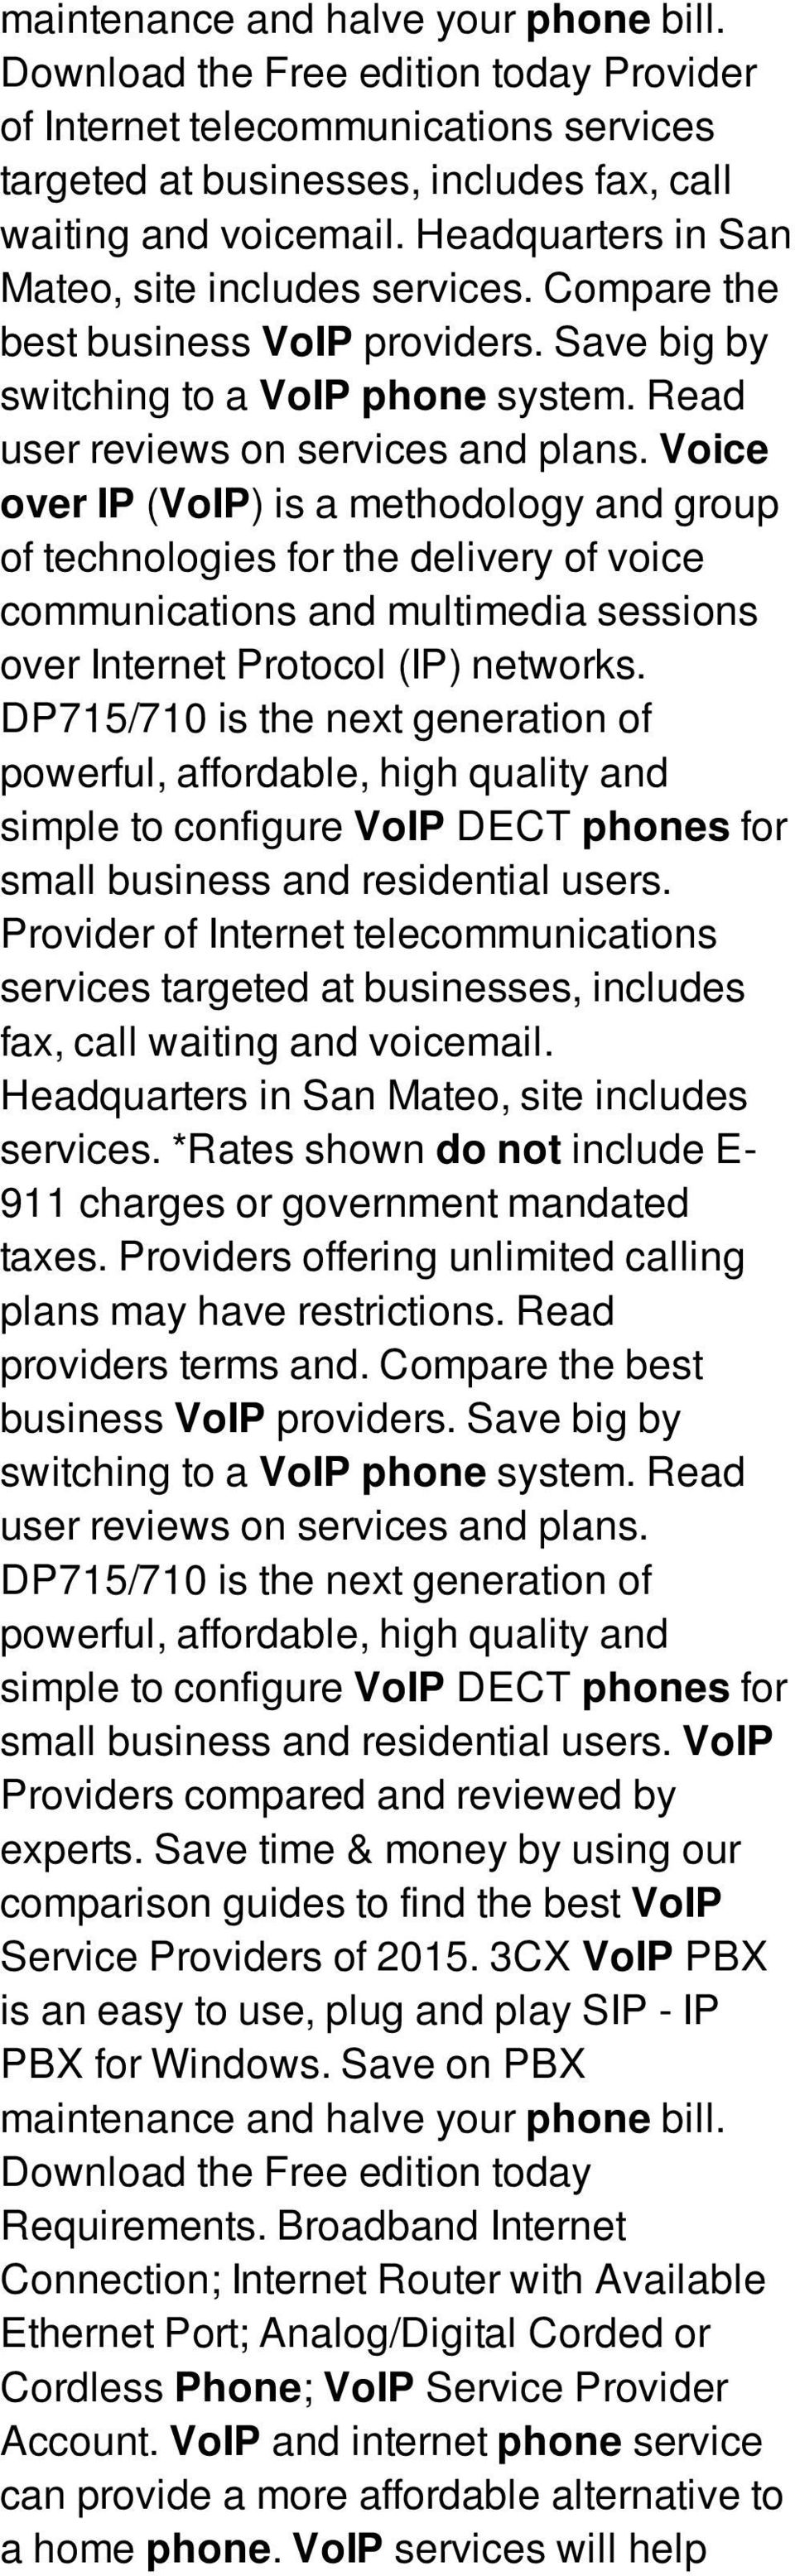 Voice over IP (VoIP) is a methodology and group of technologies for the delivery of voice communications and multimedia sessions over Internet Protocol (IP) networks.